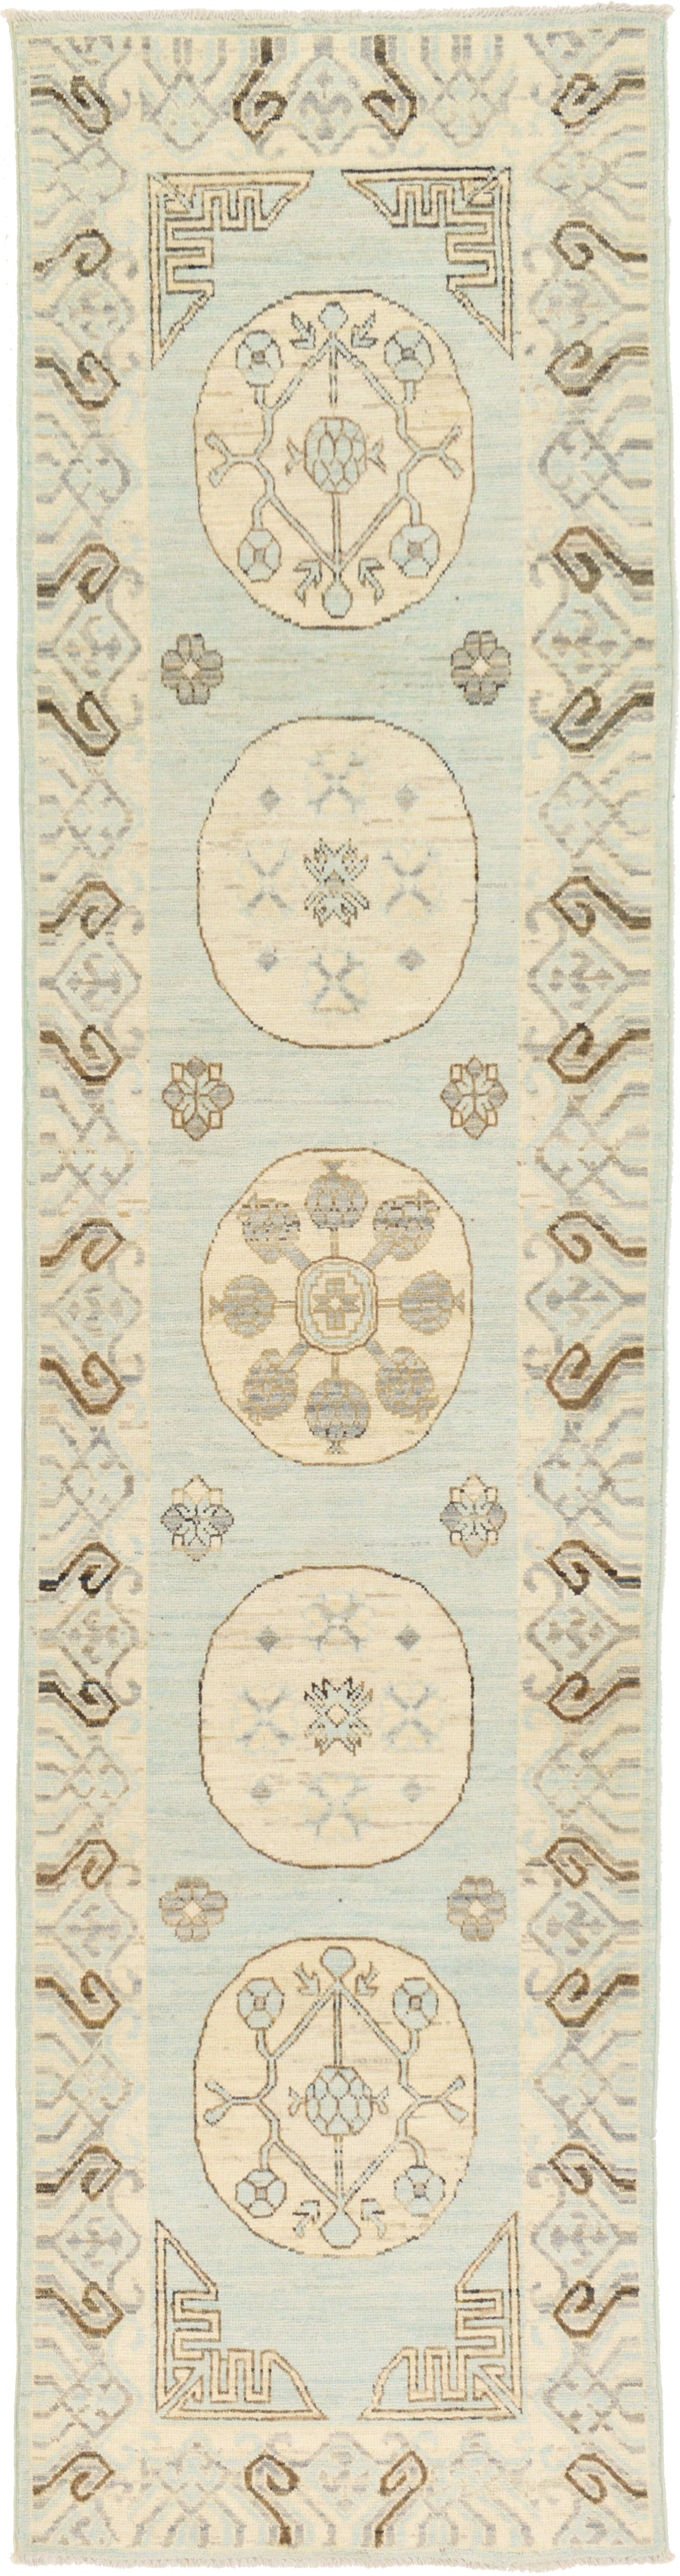 One-of-a-Kind Wareham Hand-Knotted Wool Beige/Blue Area Rug